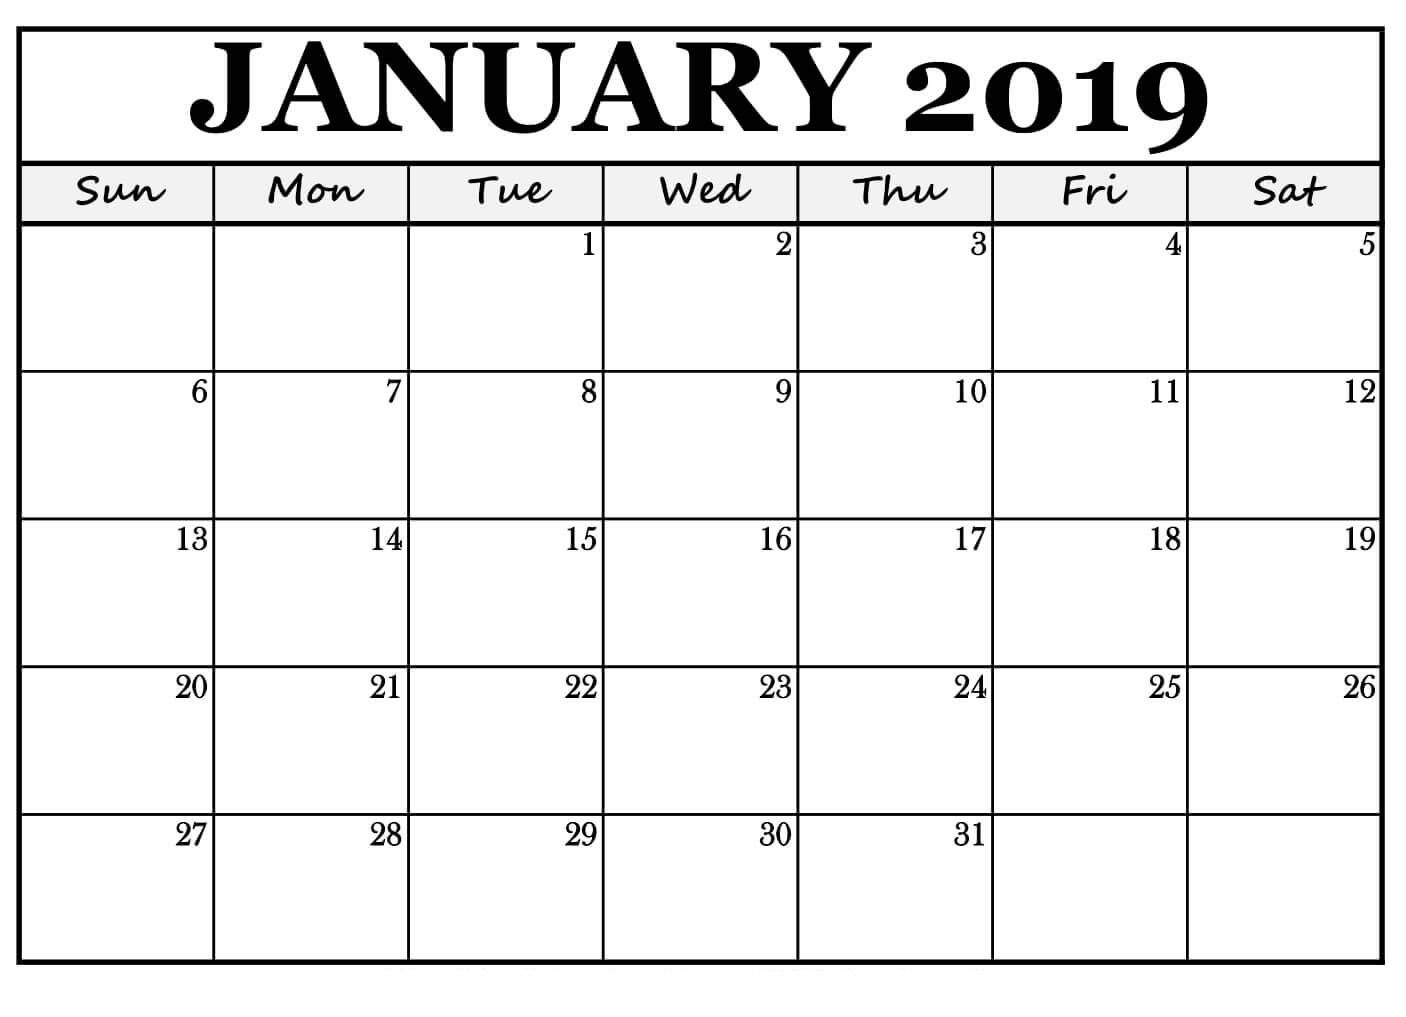 January 2019 Printable Calendar Word  </p>   </div>        <br>     <div class=